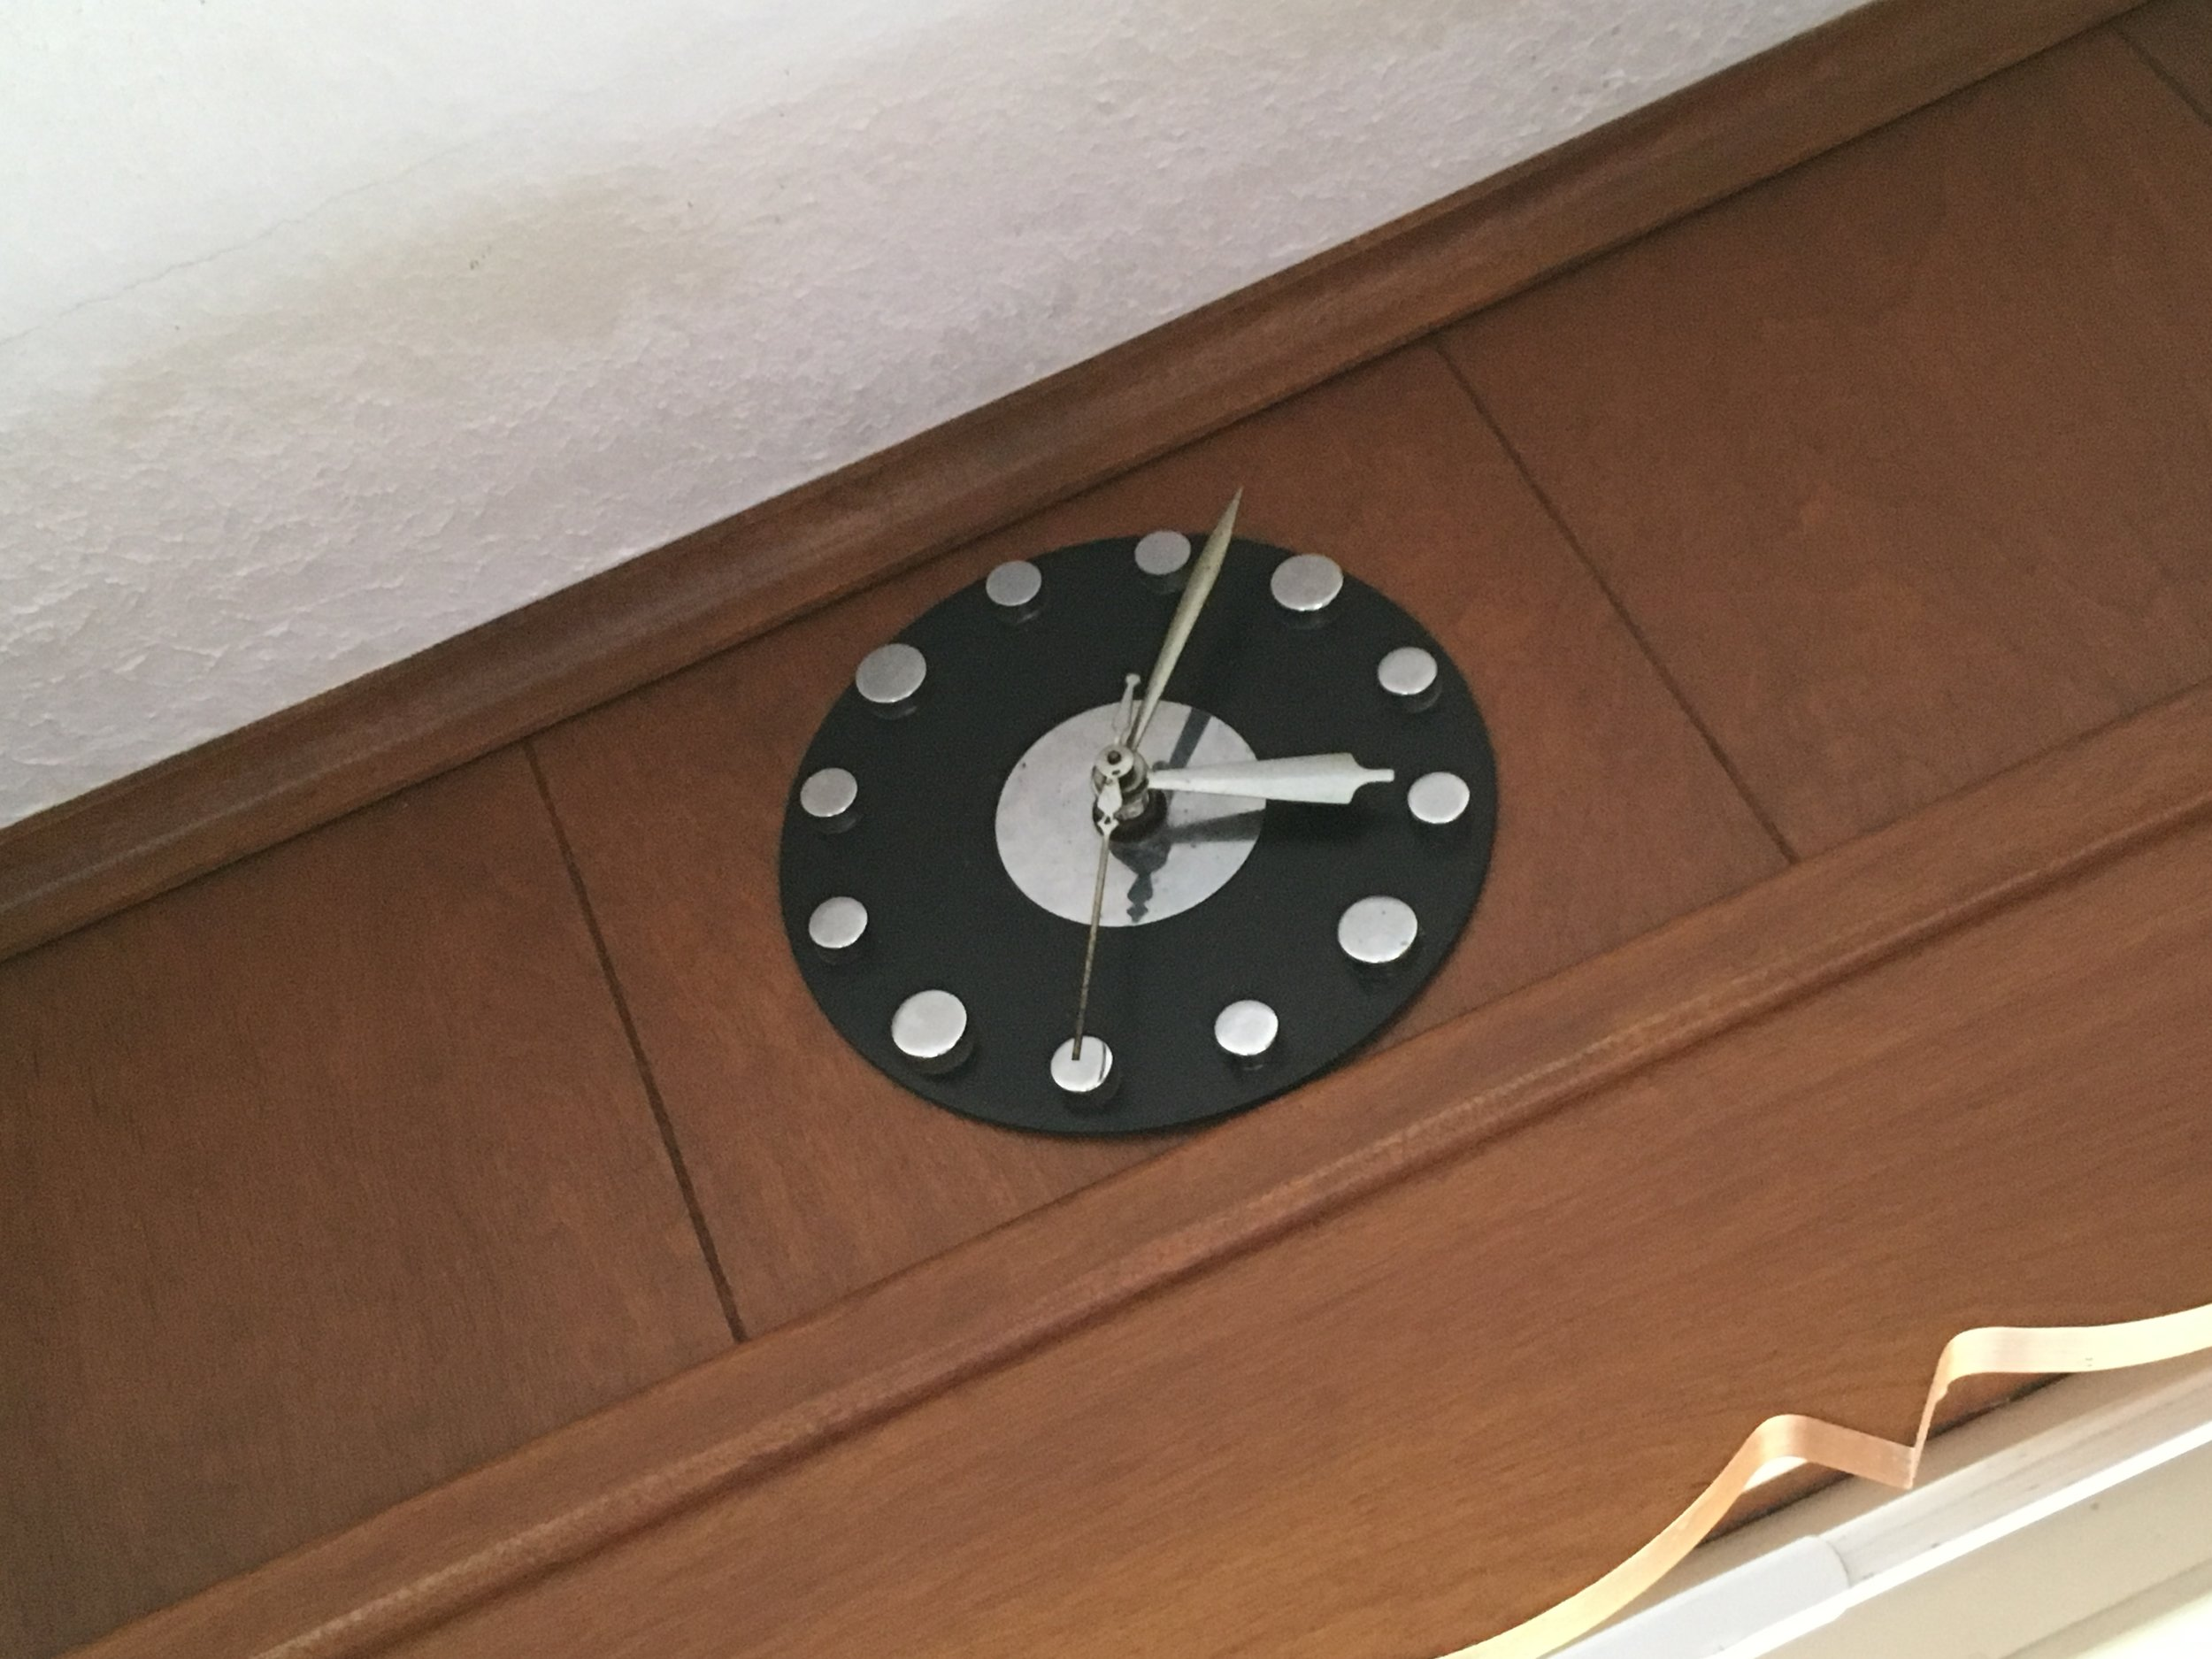 In our house, we stopped time by not fixing the broken clock.